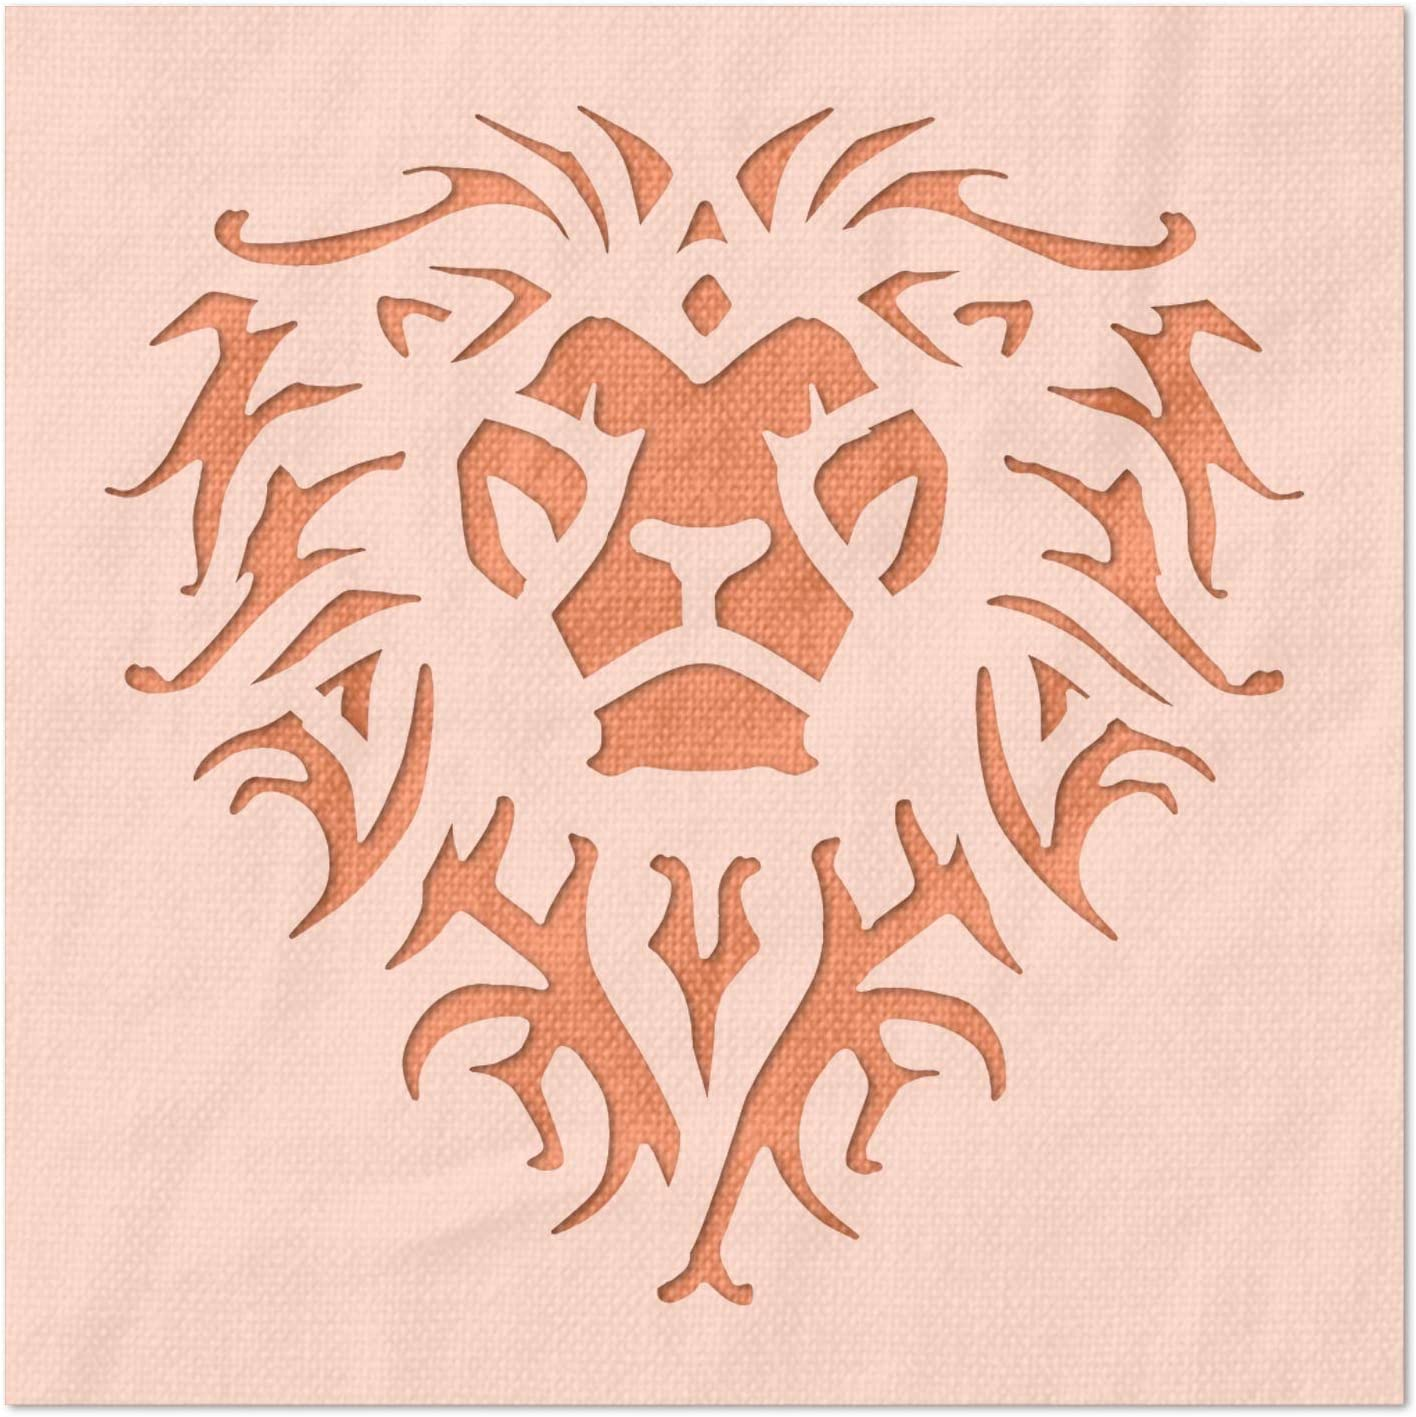 Stencil Stop Ornate Lion - DIY Elegant for Projects Reusable Pa Now on sale